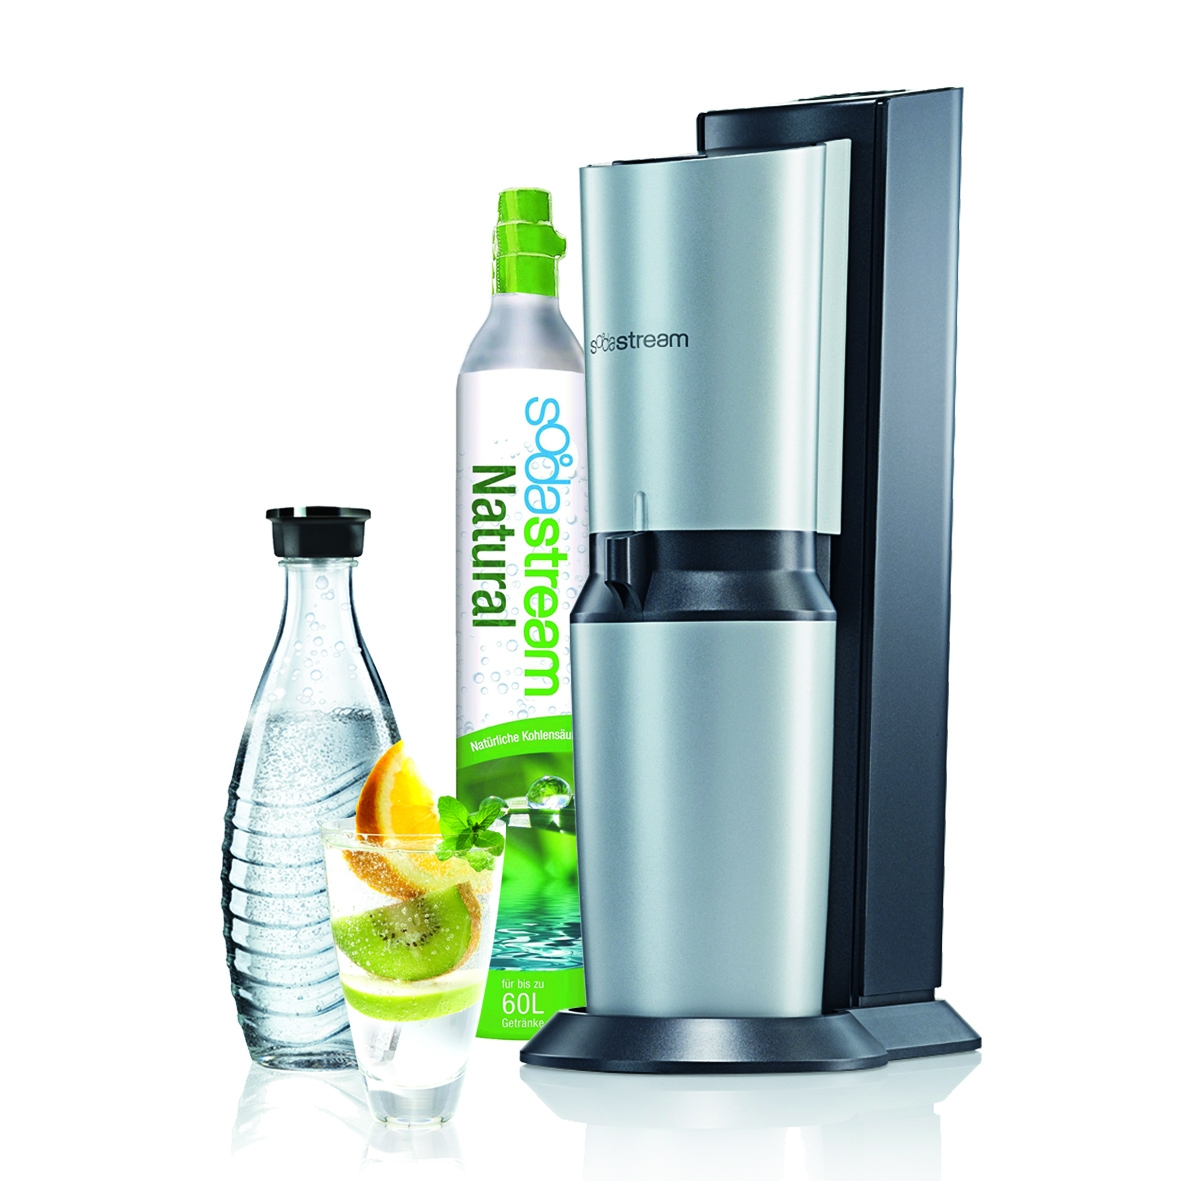 sodastream trinkwassersprudler crystal schwarz und glaskaraffe und 60 l zylinder ebay. Black Bedroom Furniture Sets. Home Design Ideas